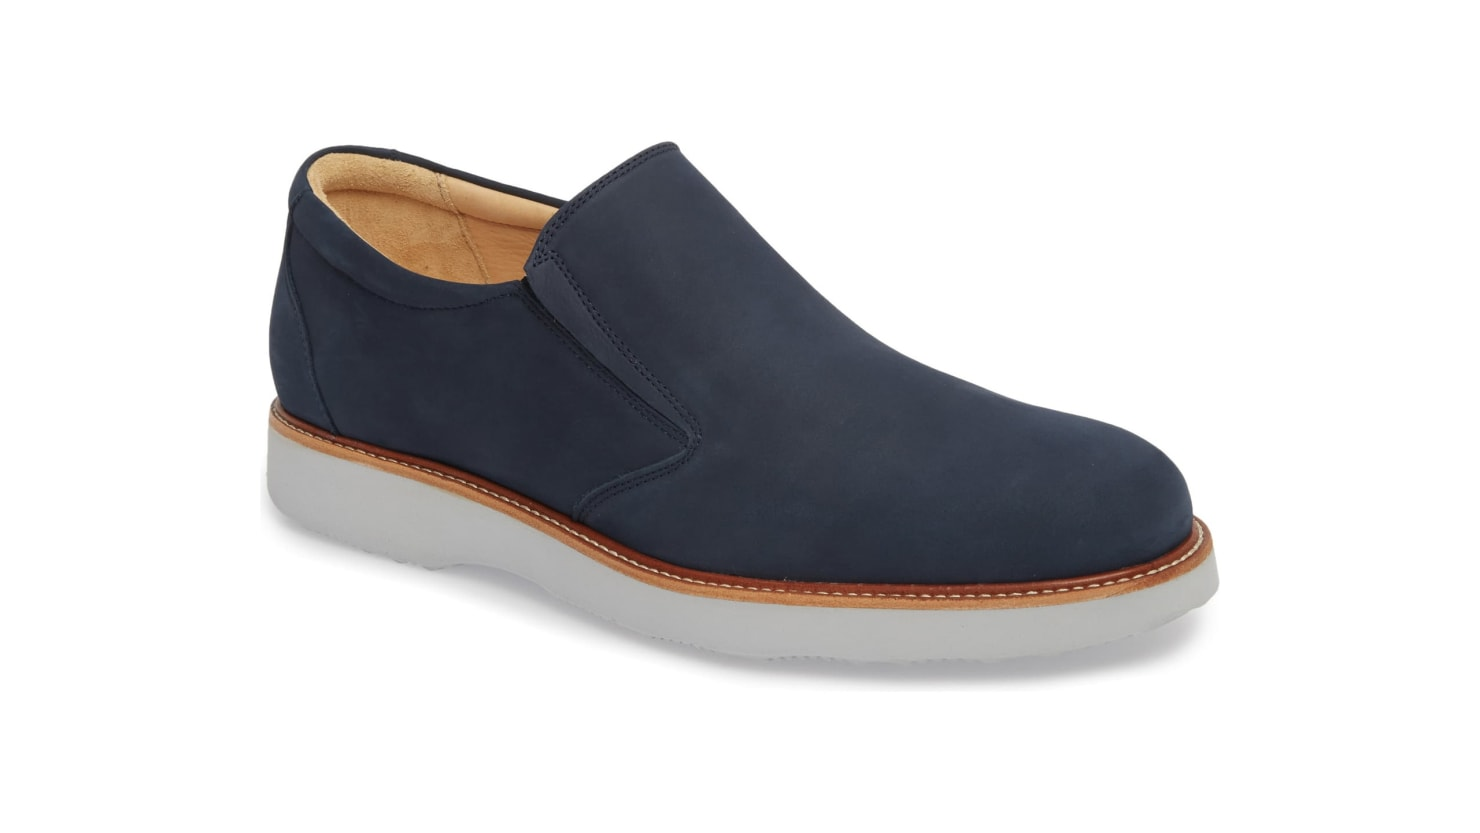 I Tested a Pair of Samuel Hubbard Frequent Traveler Slip-Ons And My Feet Felt Like They Were Walking on Butter